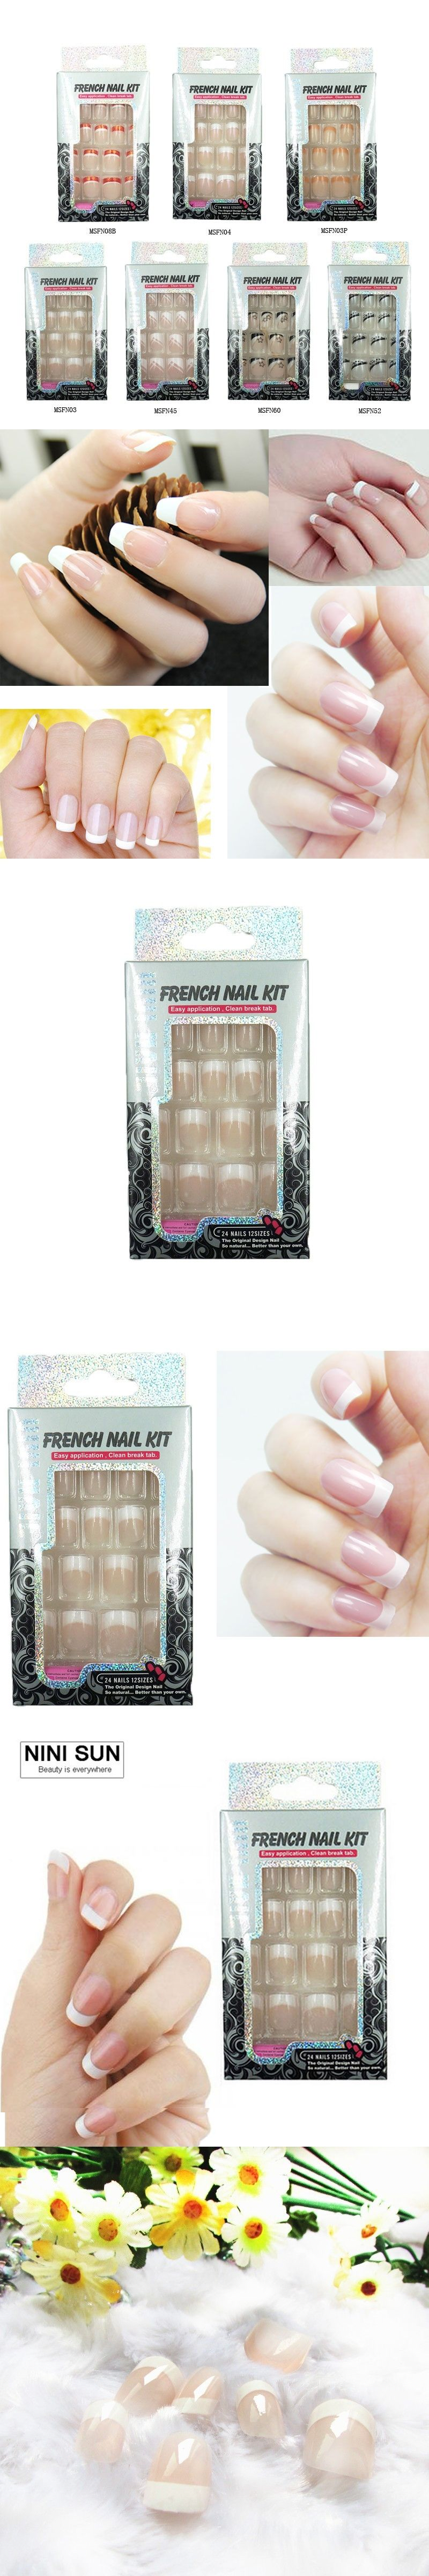 24 PCS Nail Art Tips Classic French New Girls/Bride Pre Designed ...